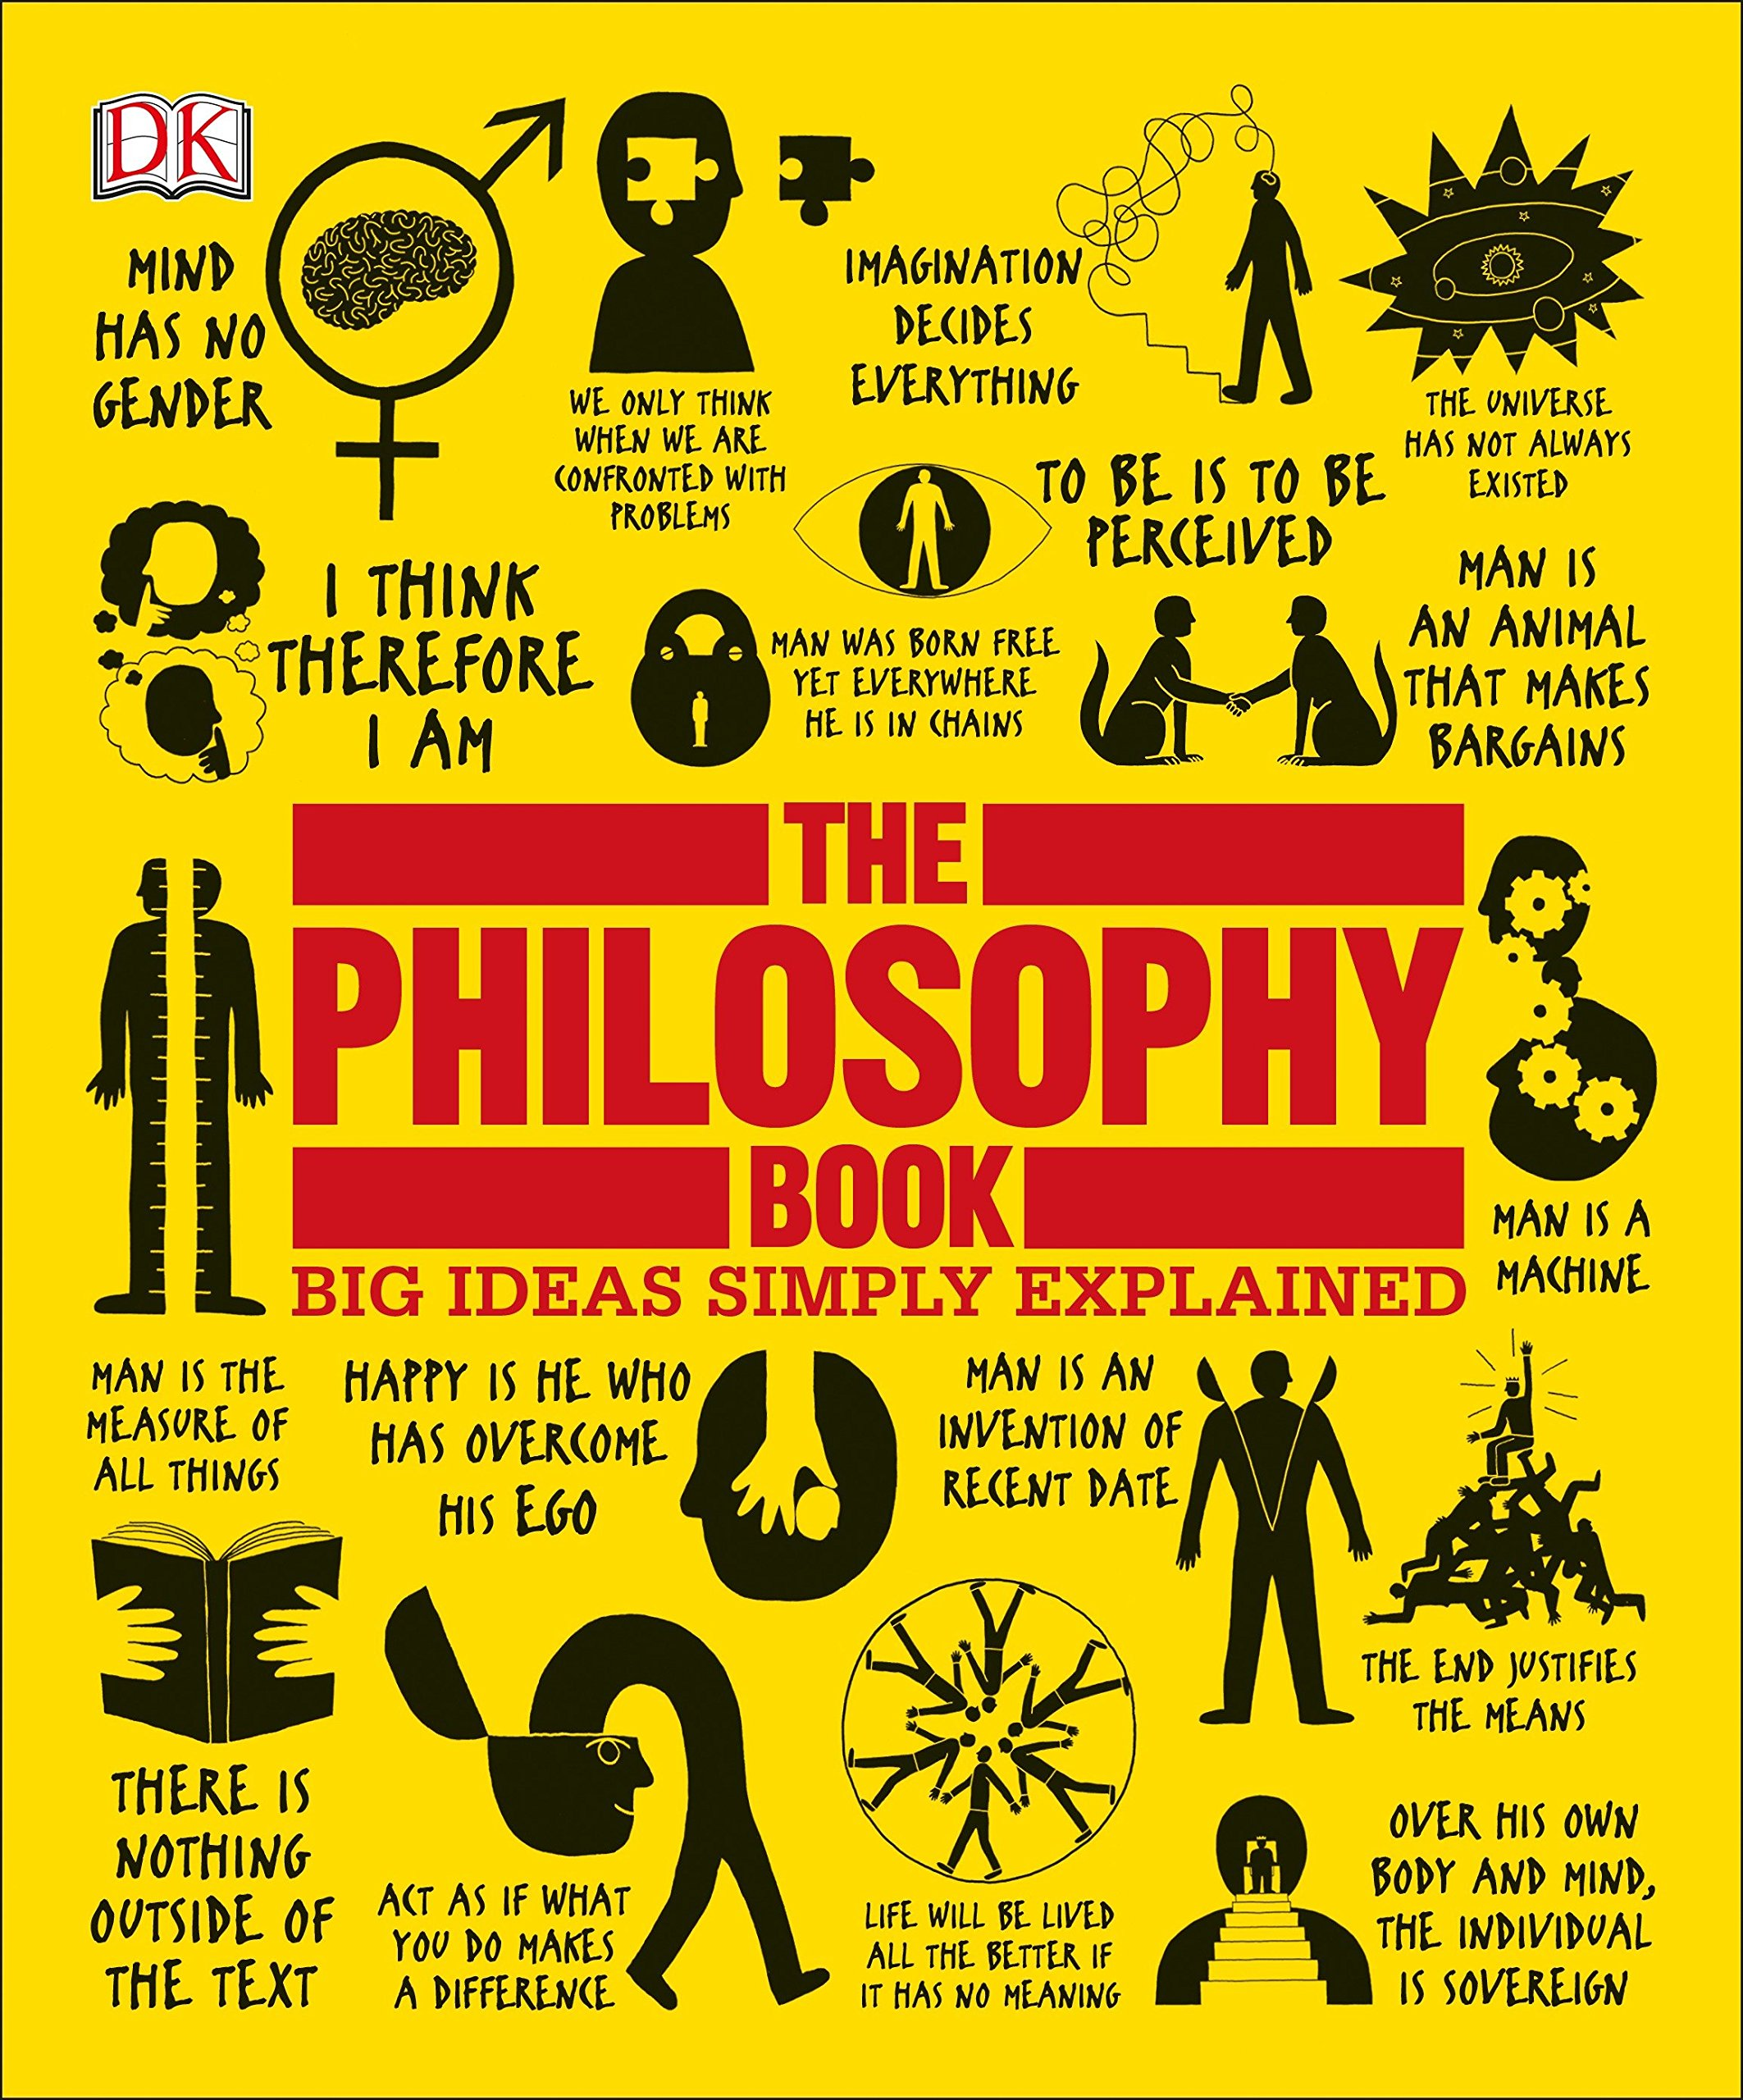 Amazon Com The Philosophy Book Big Ideas Simply Explained 9781465458551 Dk Books